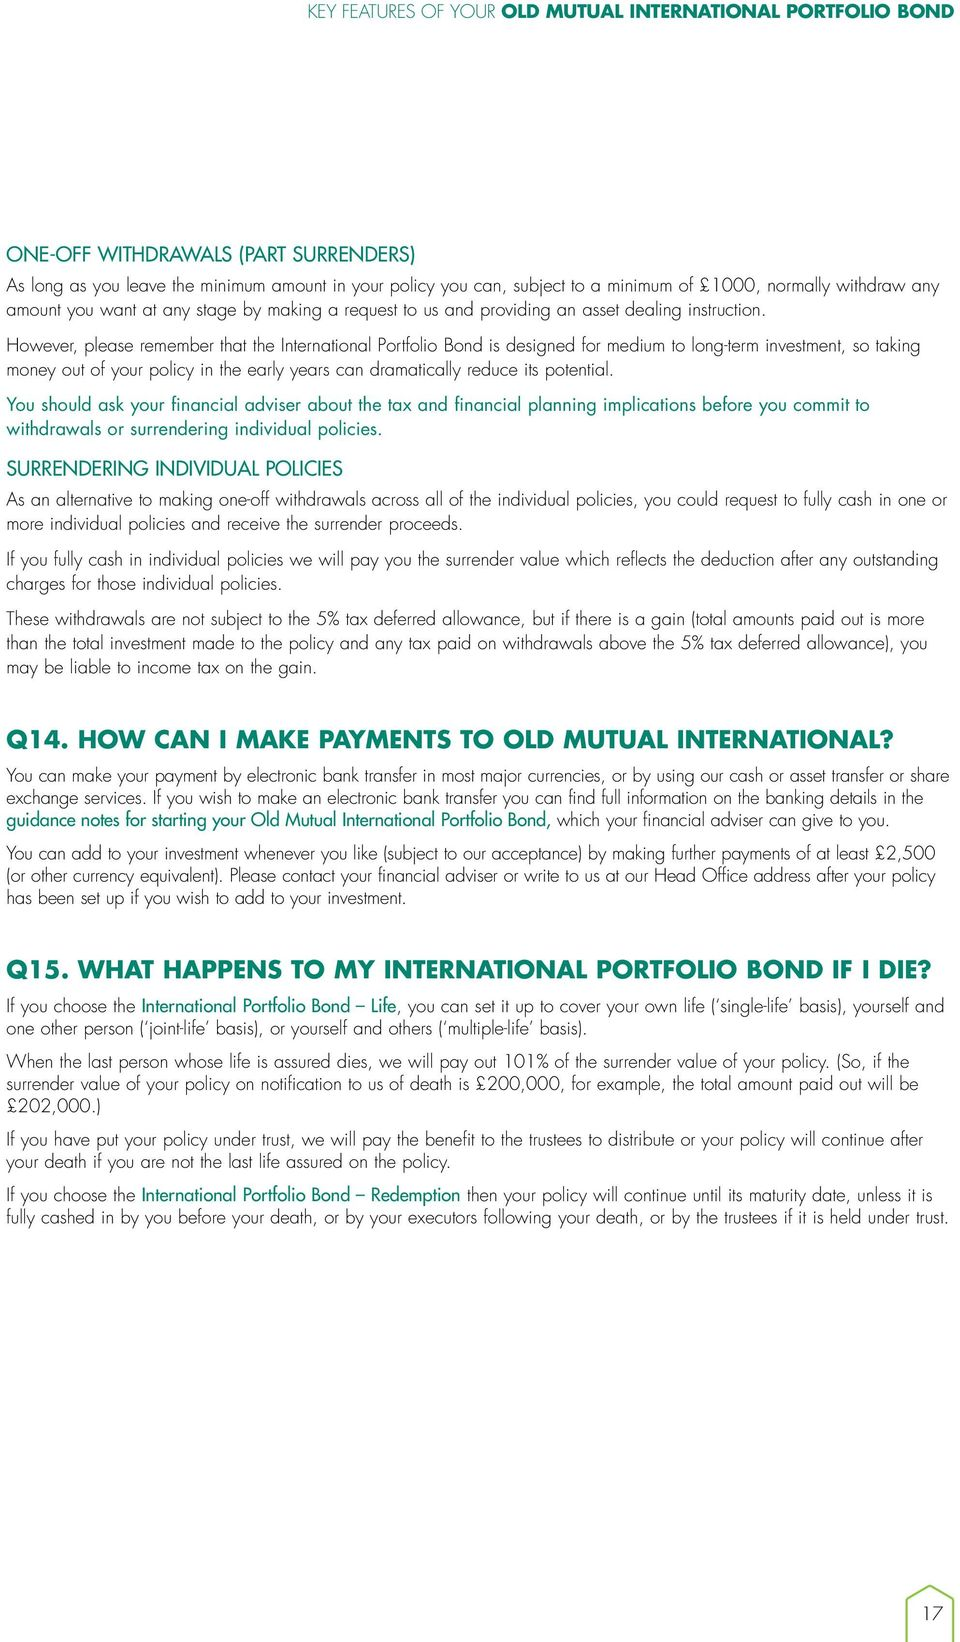 However, please remember that the International Portfolio Bond is designed for medium to long-term investment, so taking money out of your policy in the early years can dramatically reduce its